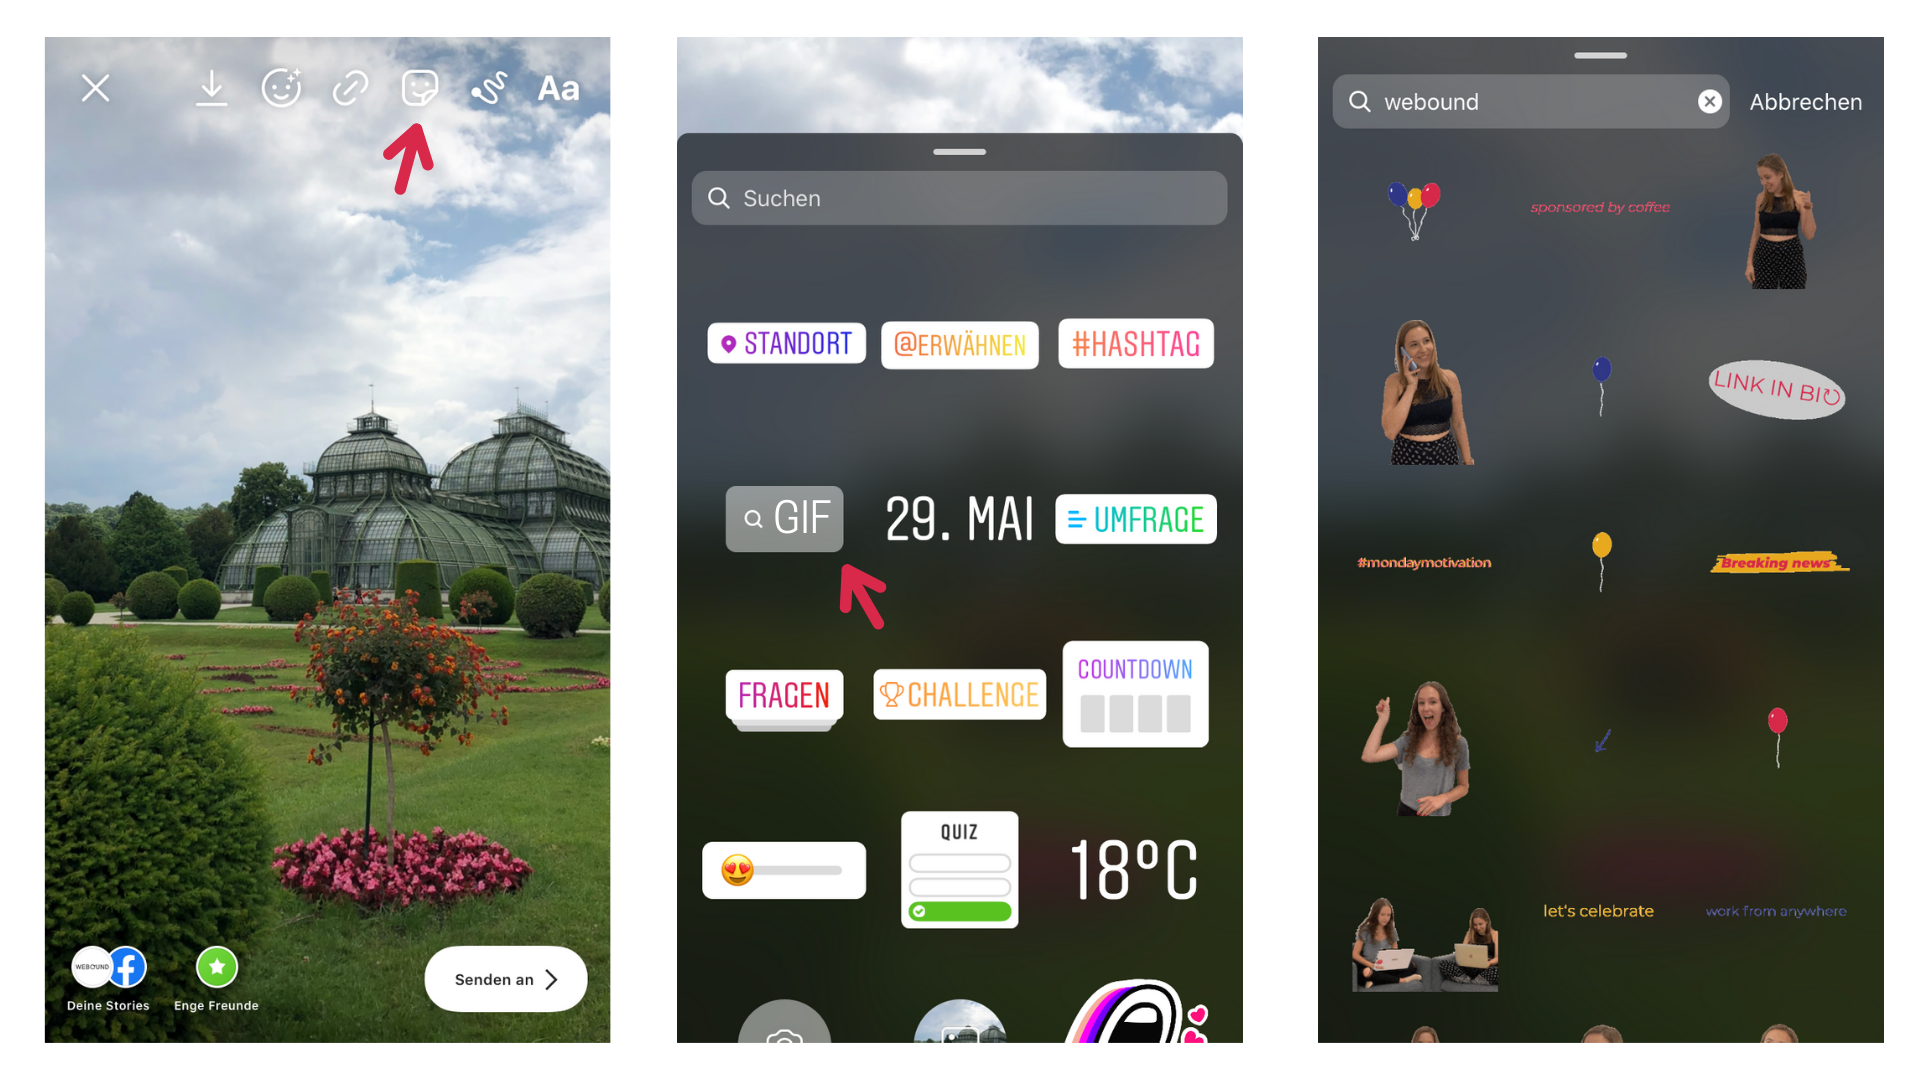 How to use weBOUND Instagram GIF Stickers